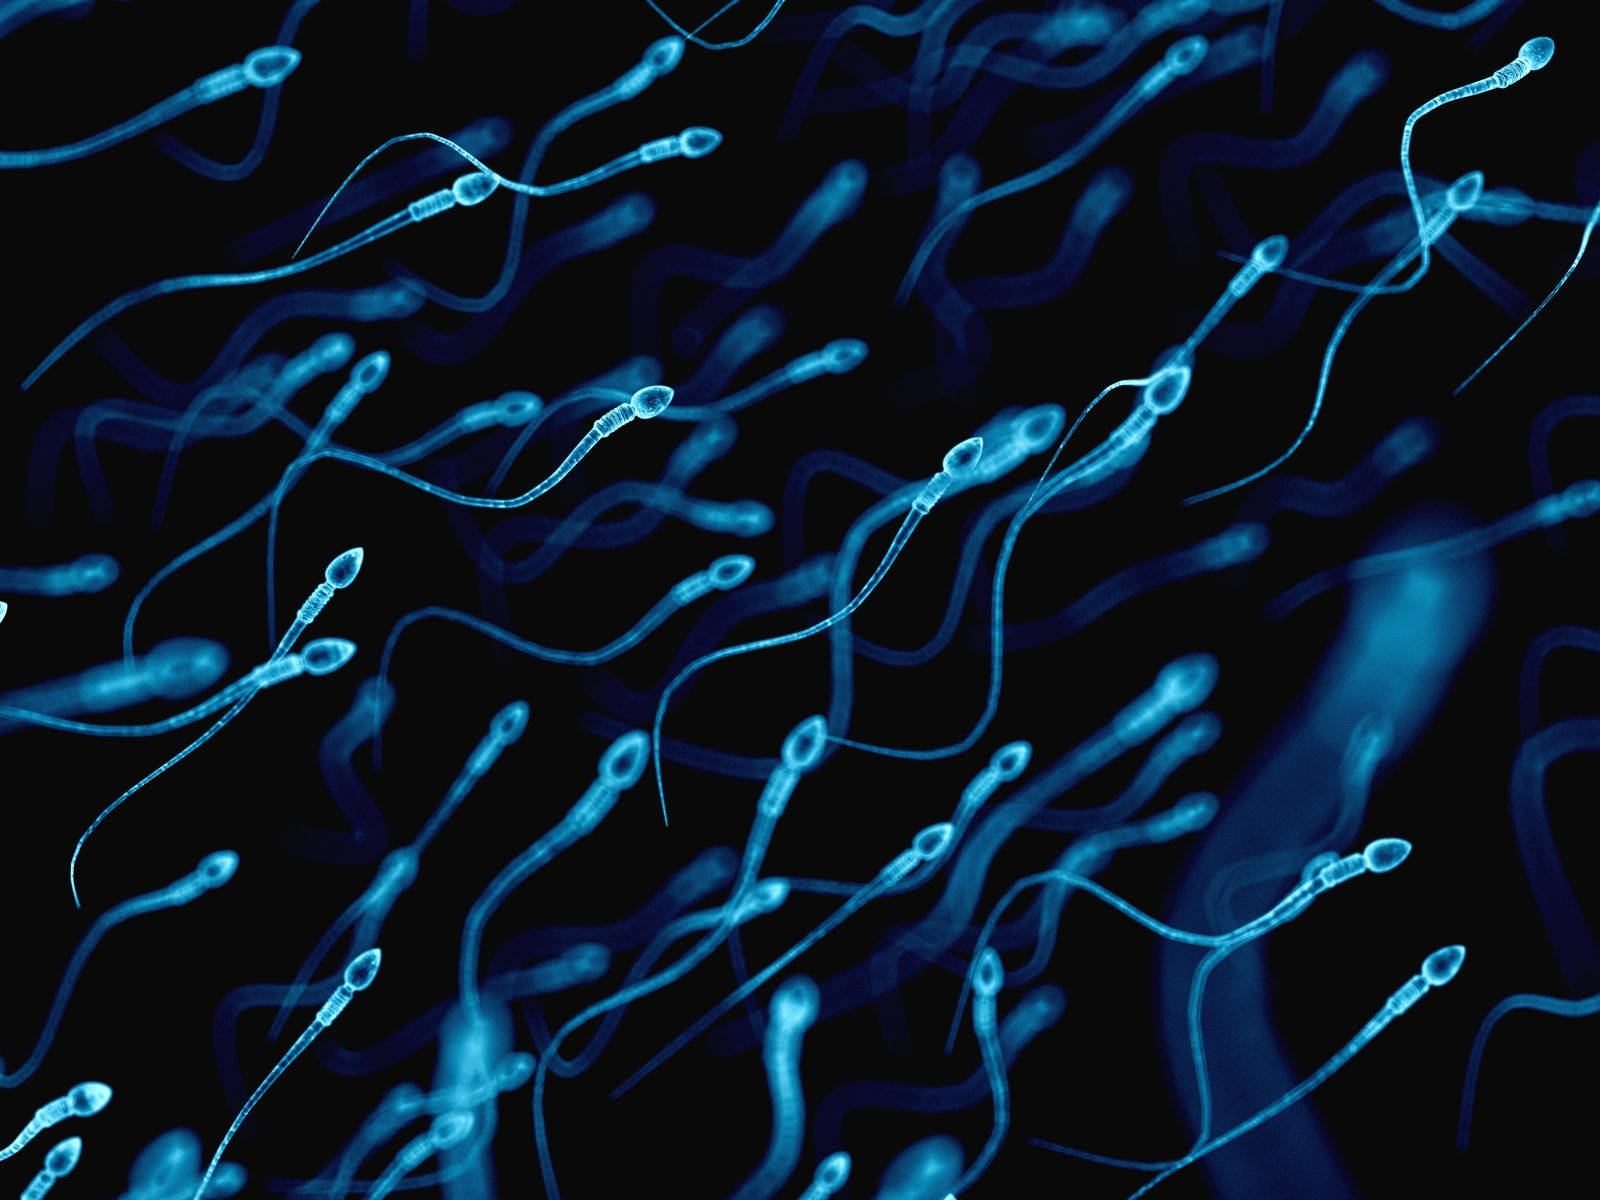 Researchers use sperm to deliver cancer drugs to tumors | DeviceDaily.com